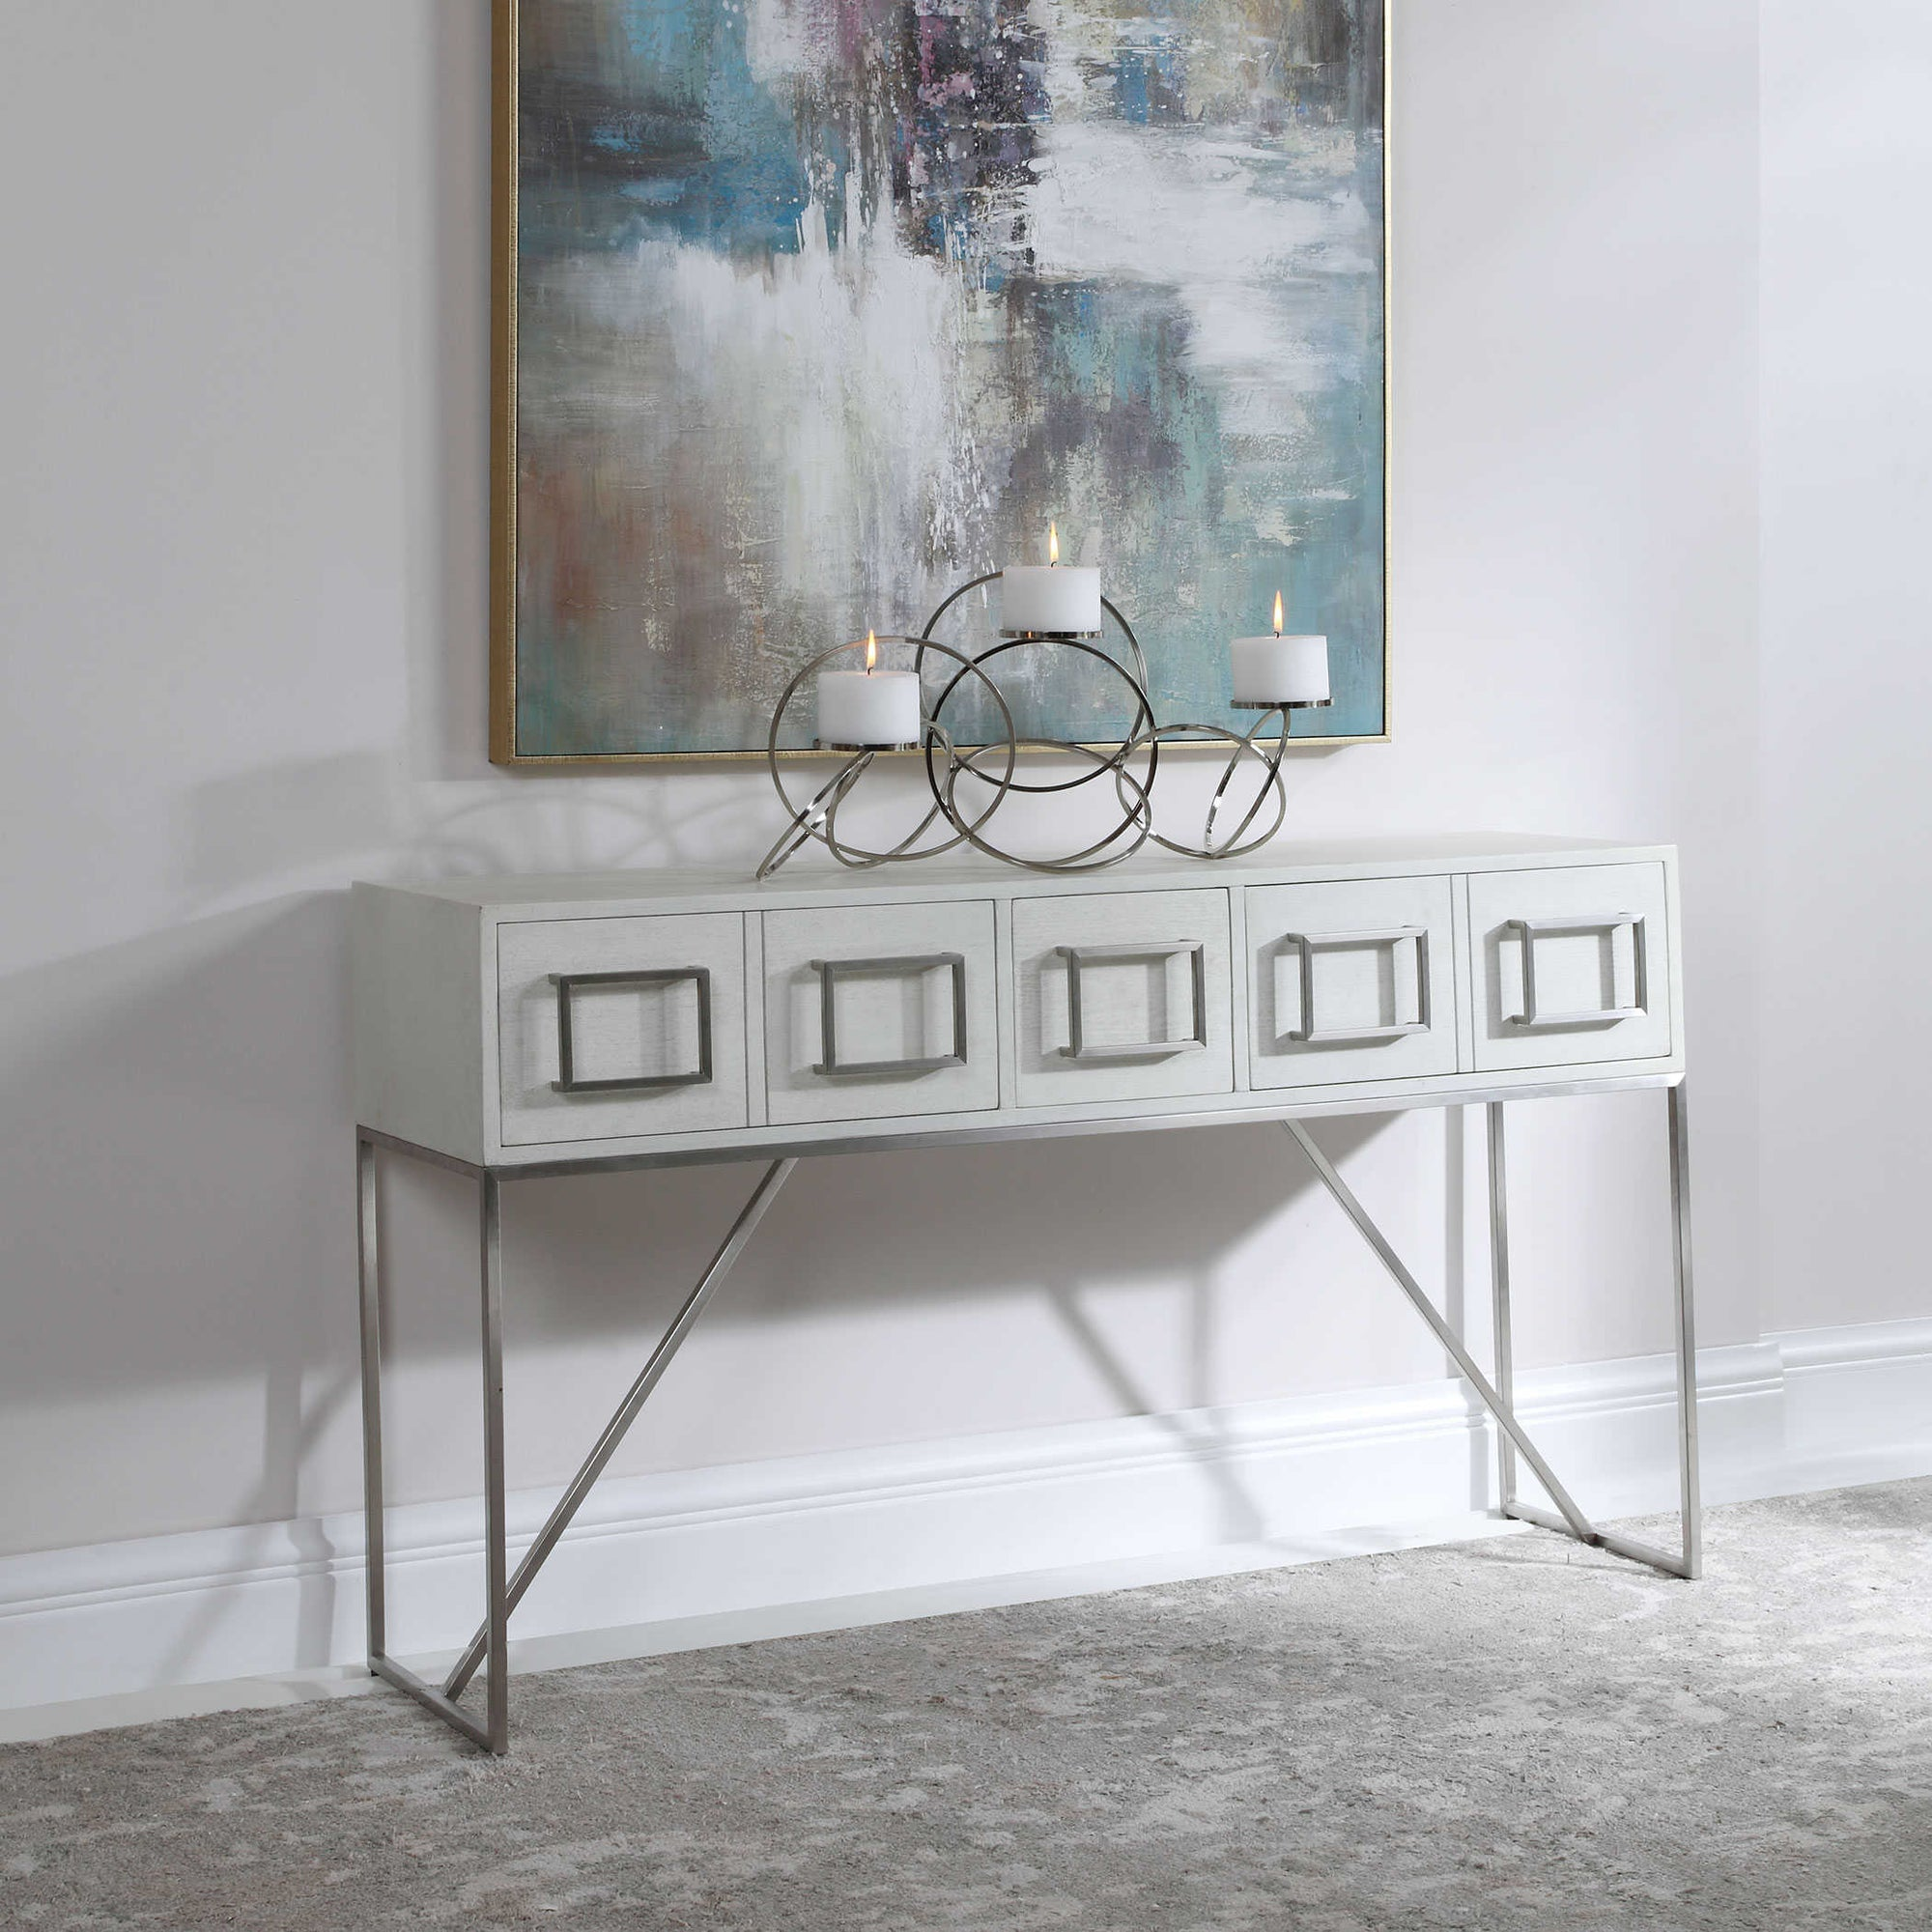 A white sideboard table, with doors and square silver handles, silver finish legs, and a set of candles on top of it.